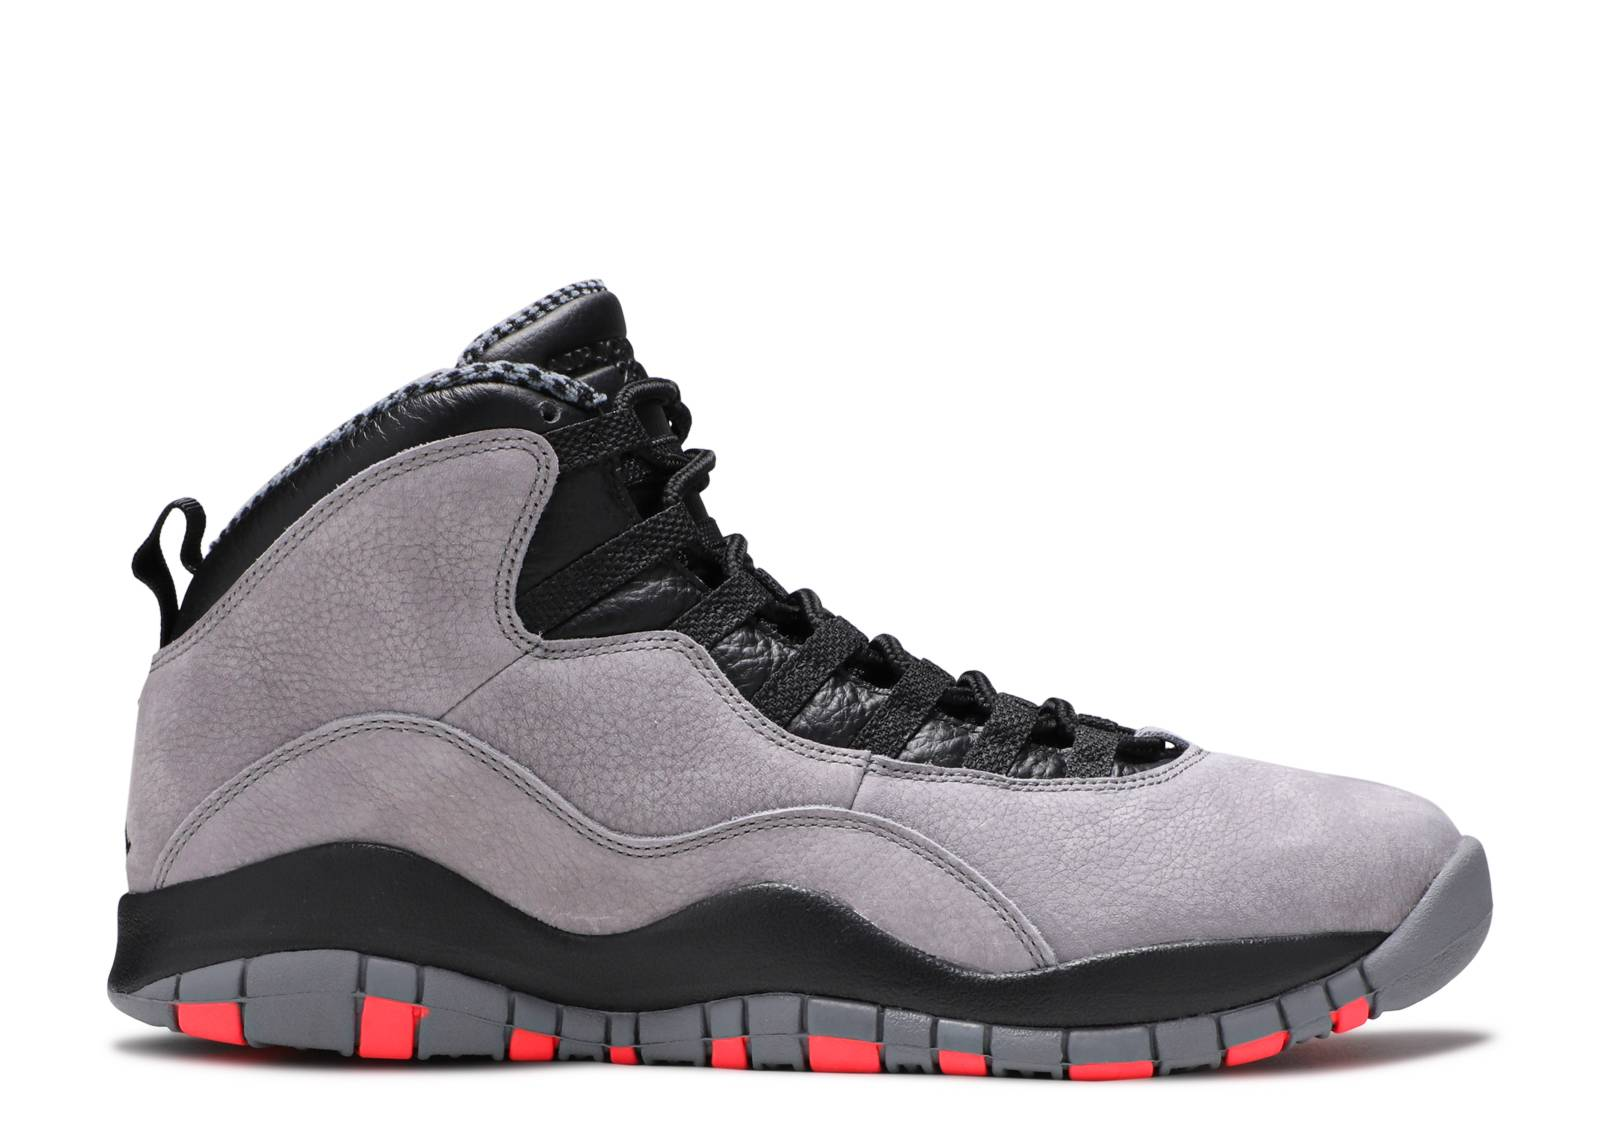 official photos e7d4e 44627 air jordan retro 10